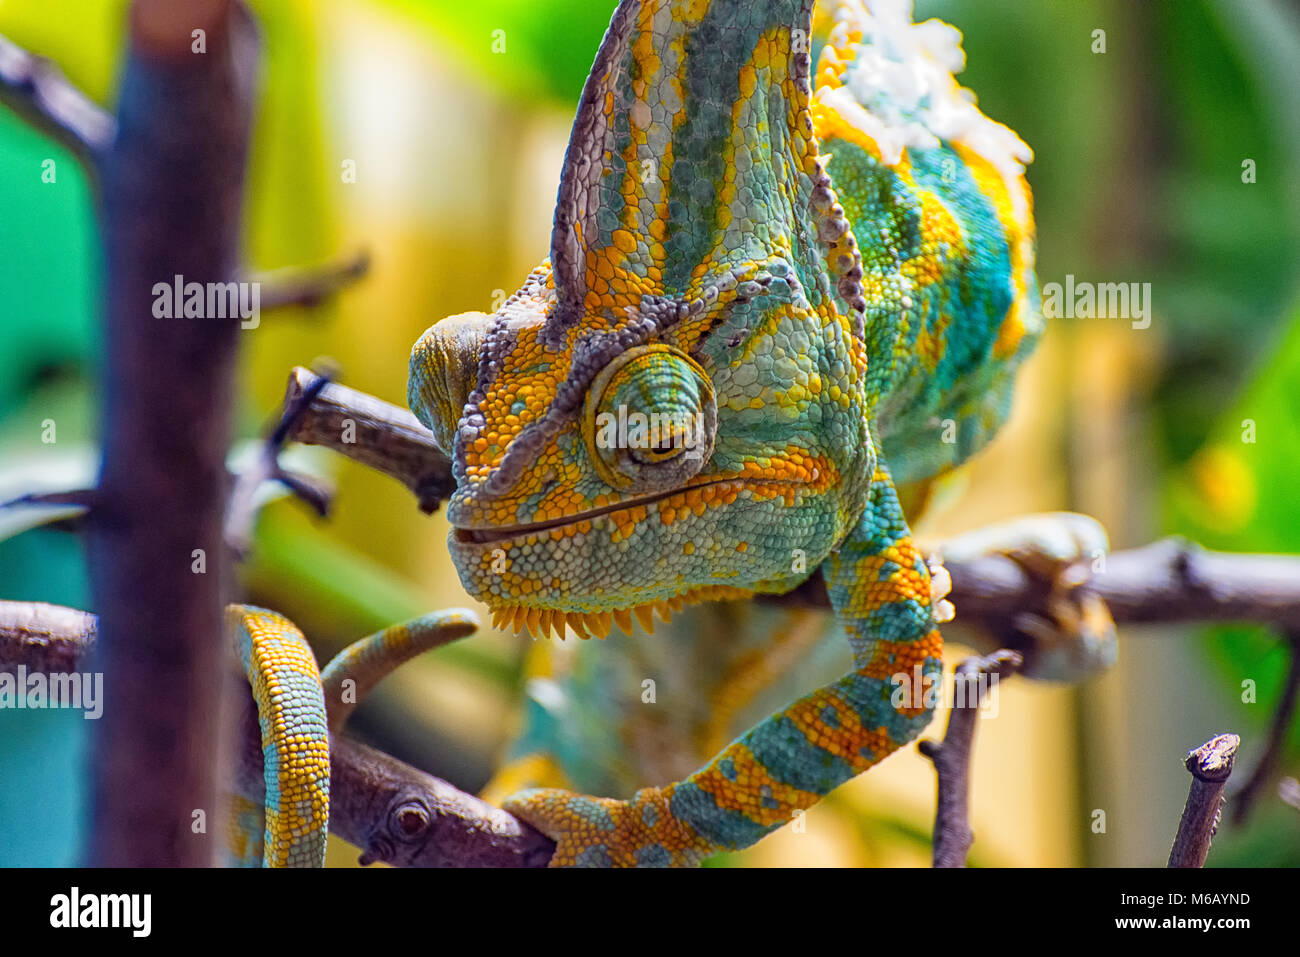 The colorful Chameleon III - Stock Image